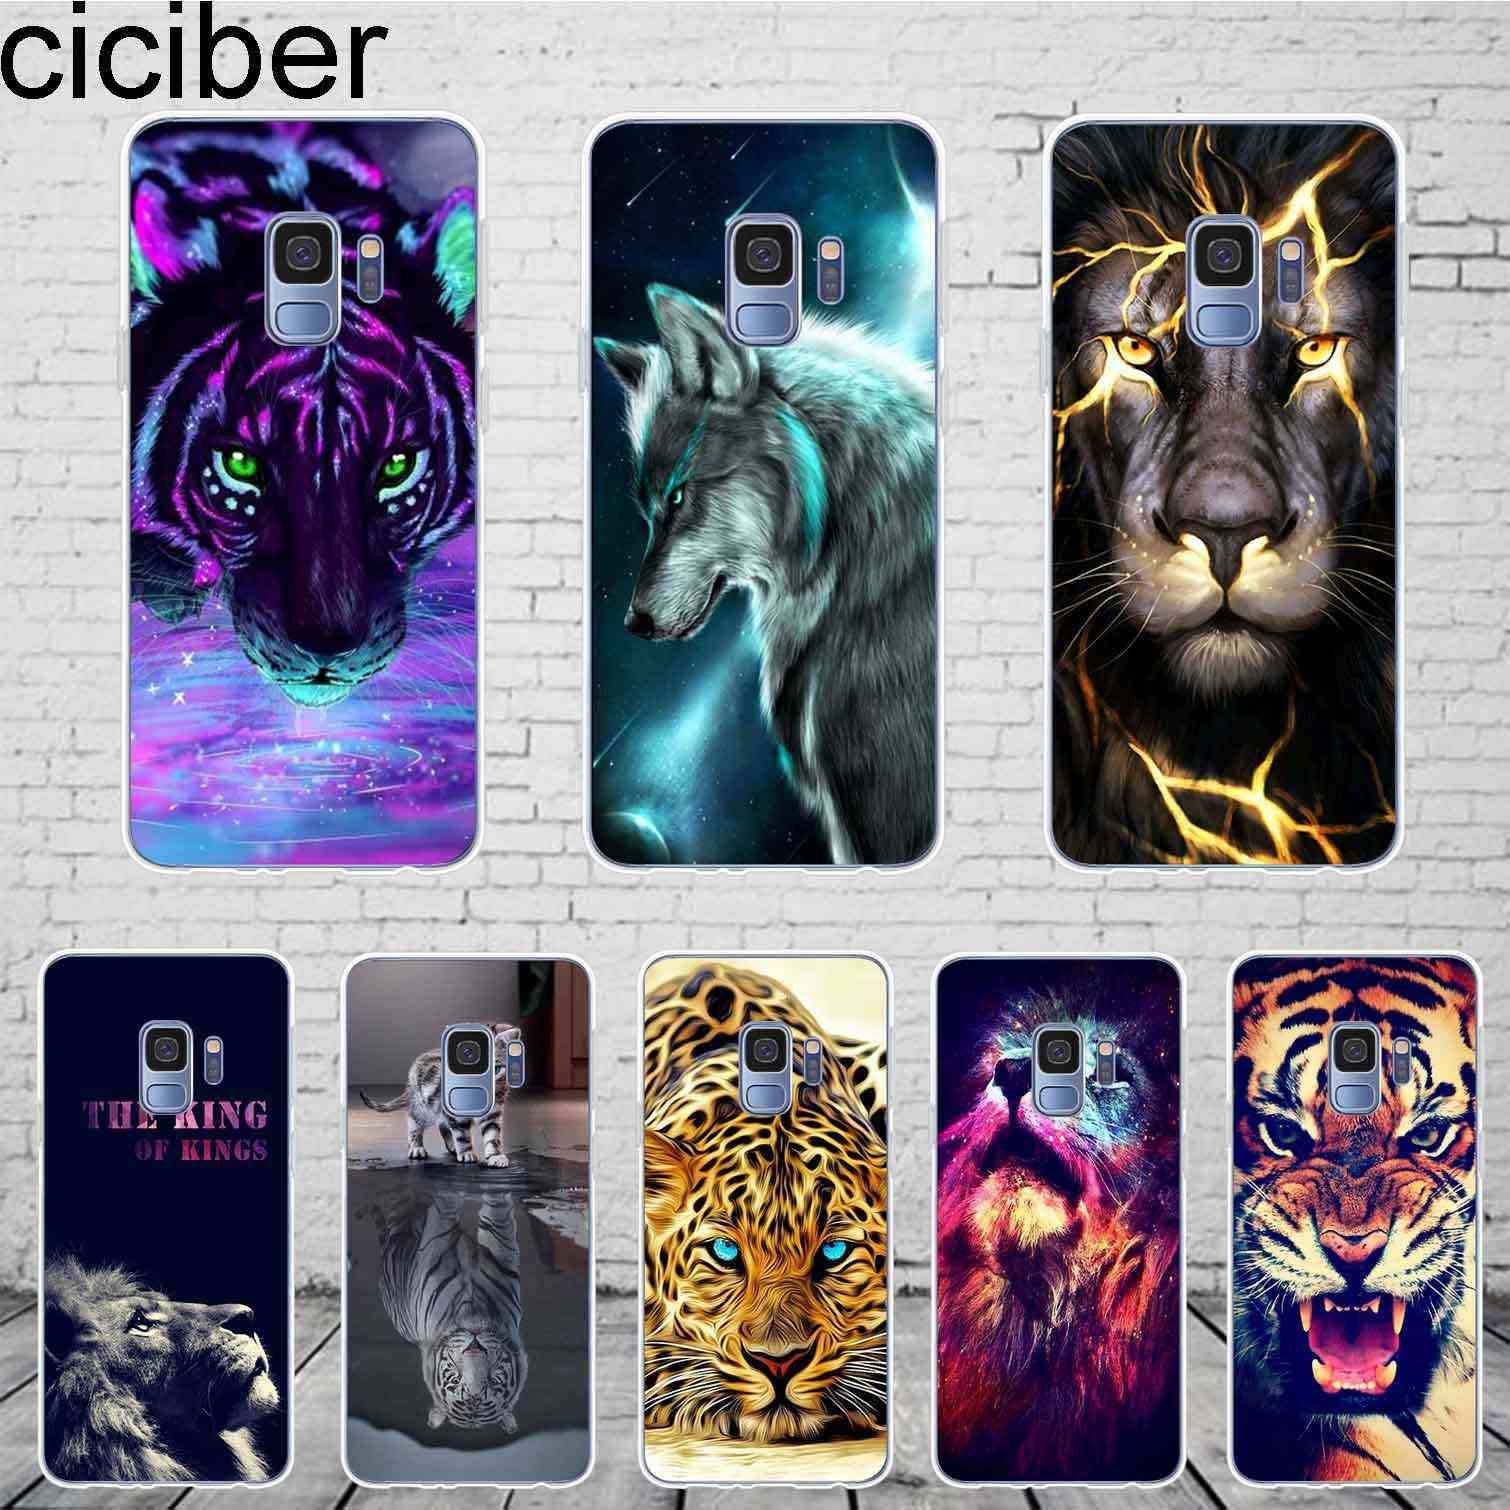 ciciber Lion Tiger For Samsung Galaxy S 5 6 7 8 9 Edge Plus Phone Case Soft TPU For Galaxy Note 3 4 5 8 9 10 Plus Cover Coque